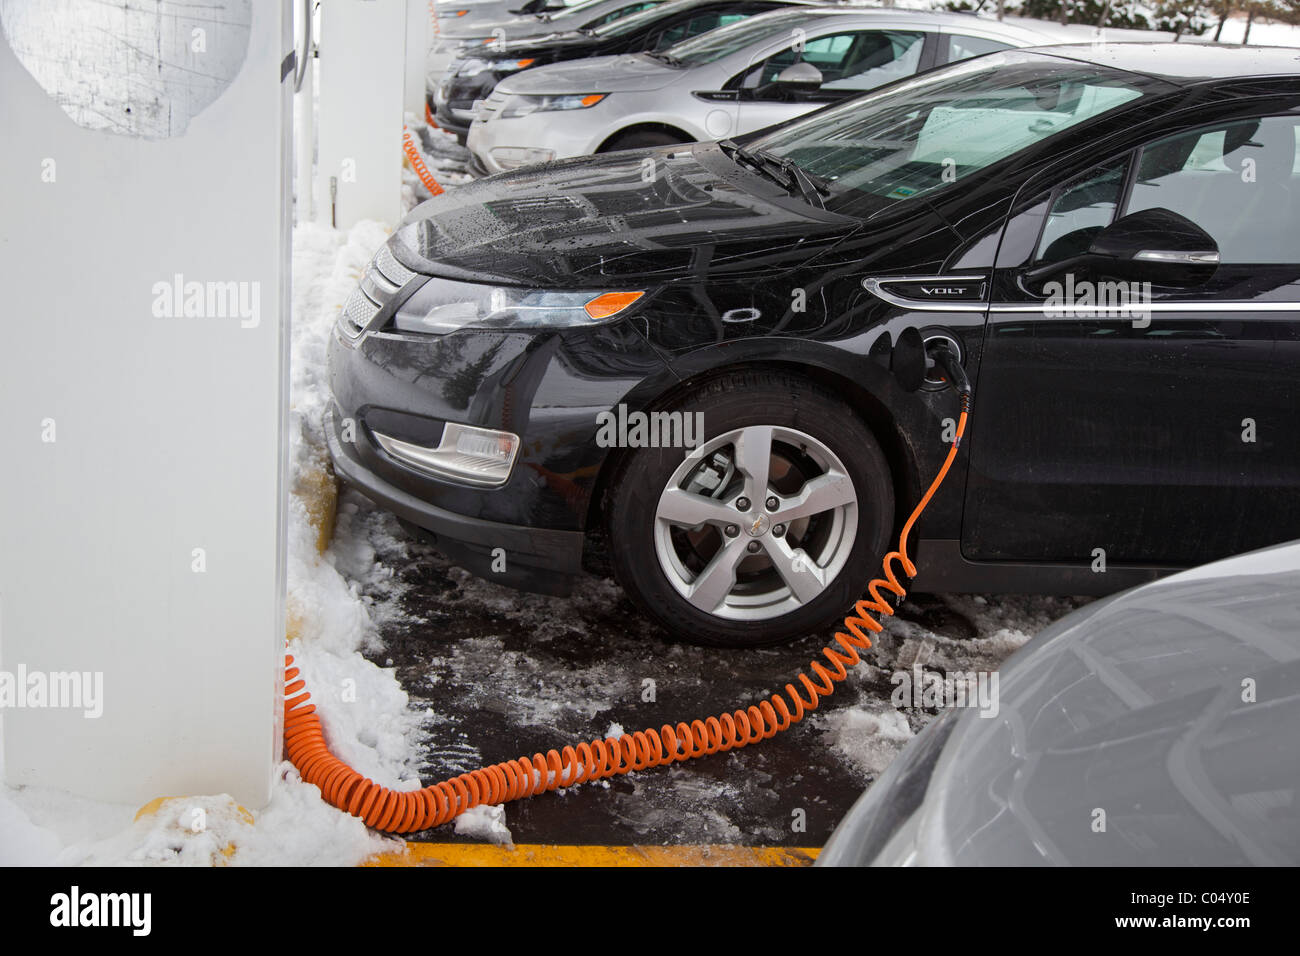 Chevrolet Volt Electric Cars Charging Outside The Factory Where